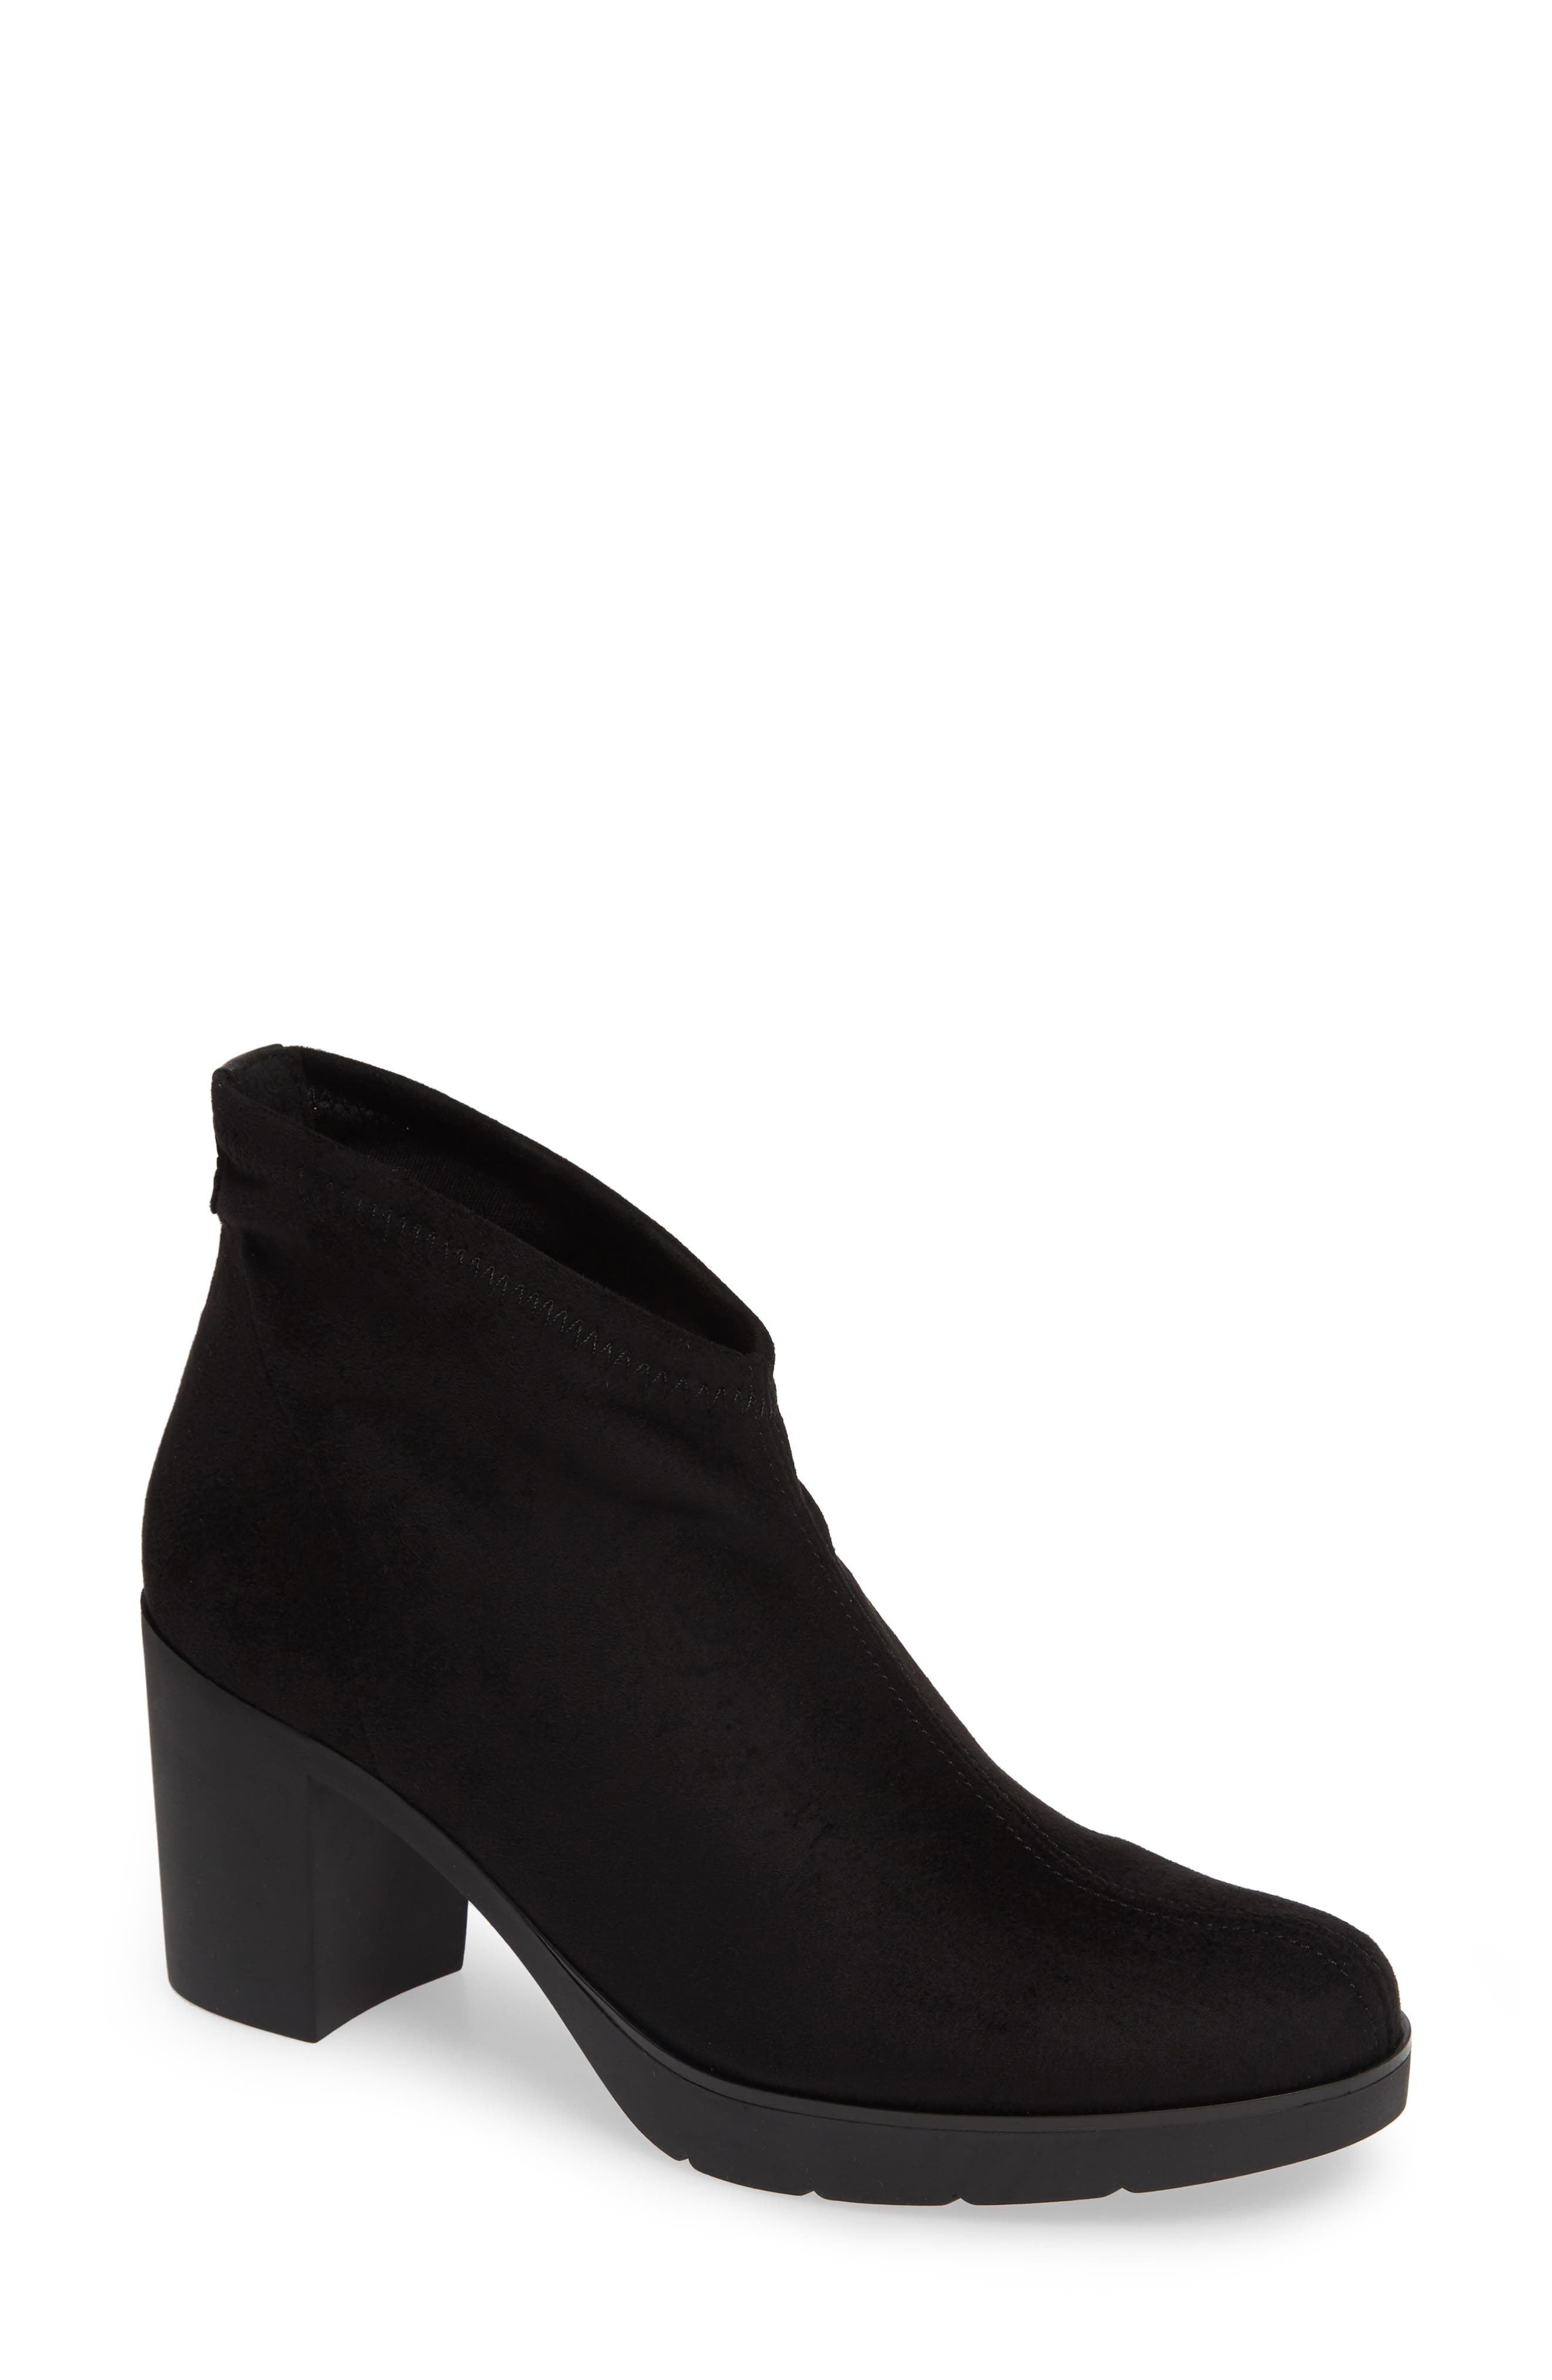 'Finley' Bootie,                         Main,                         color, BLACK/ BLACK FABRIC